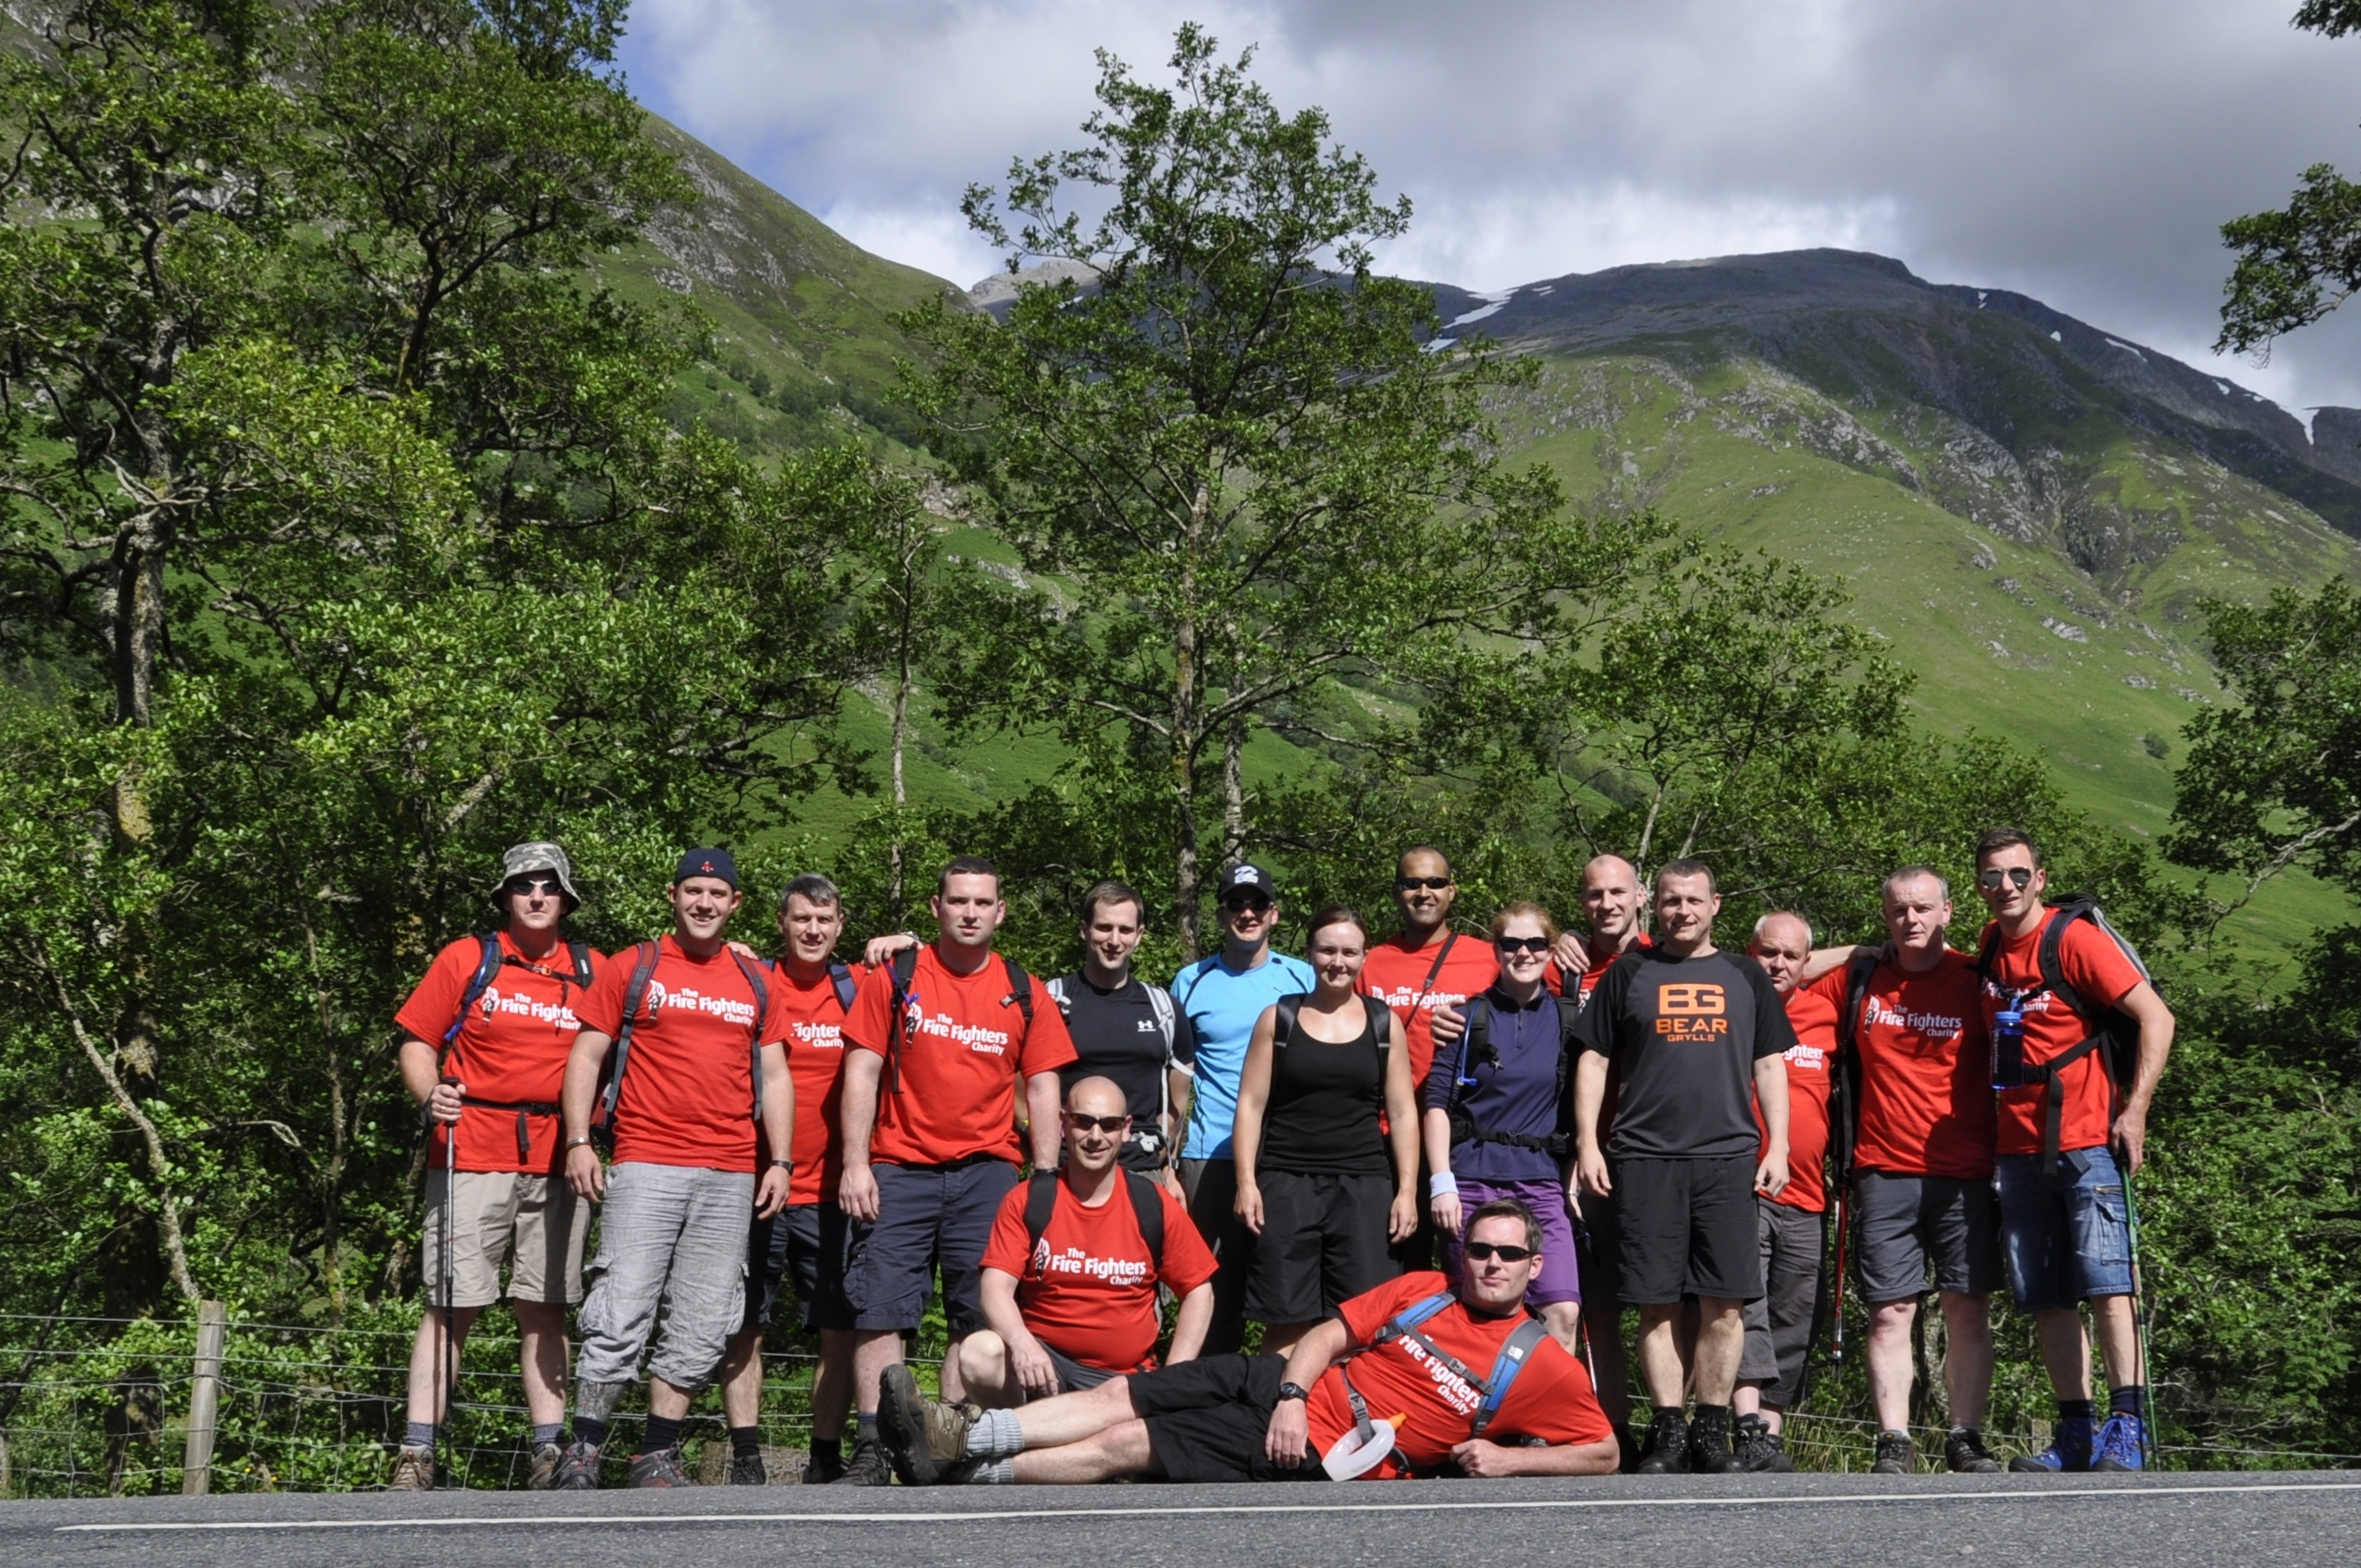 Dundee Crew scale the heights and raise over £3000 for charity